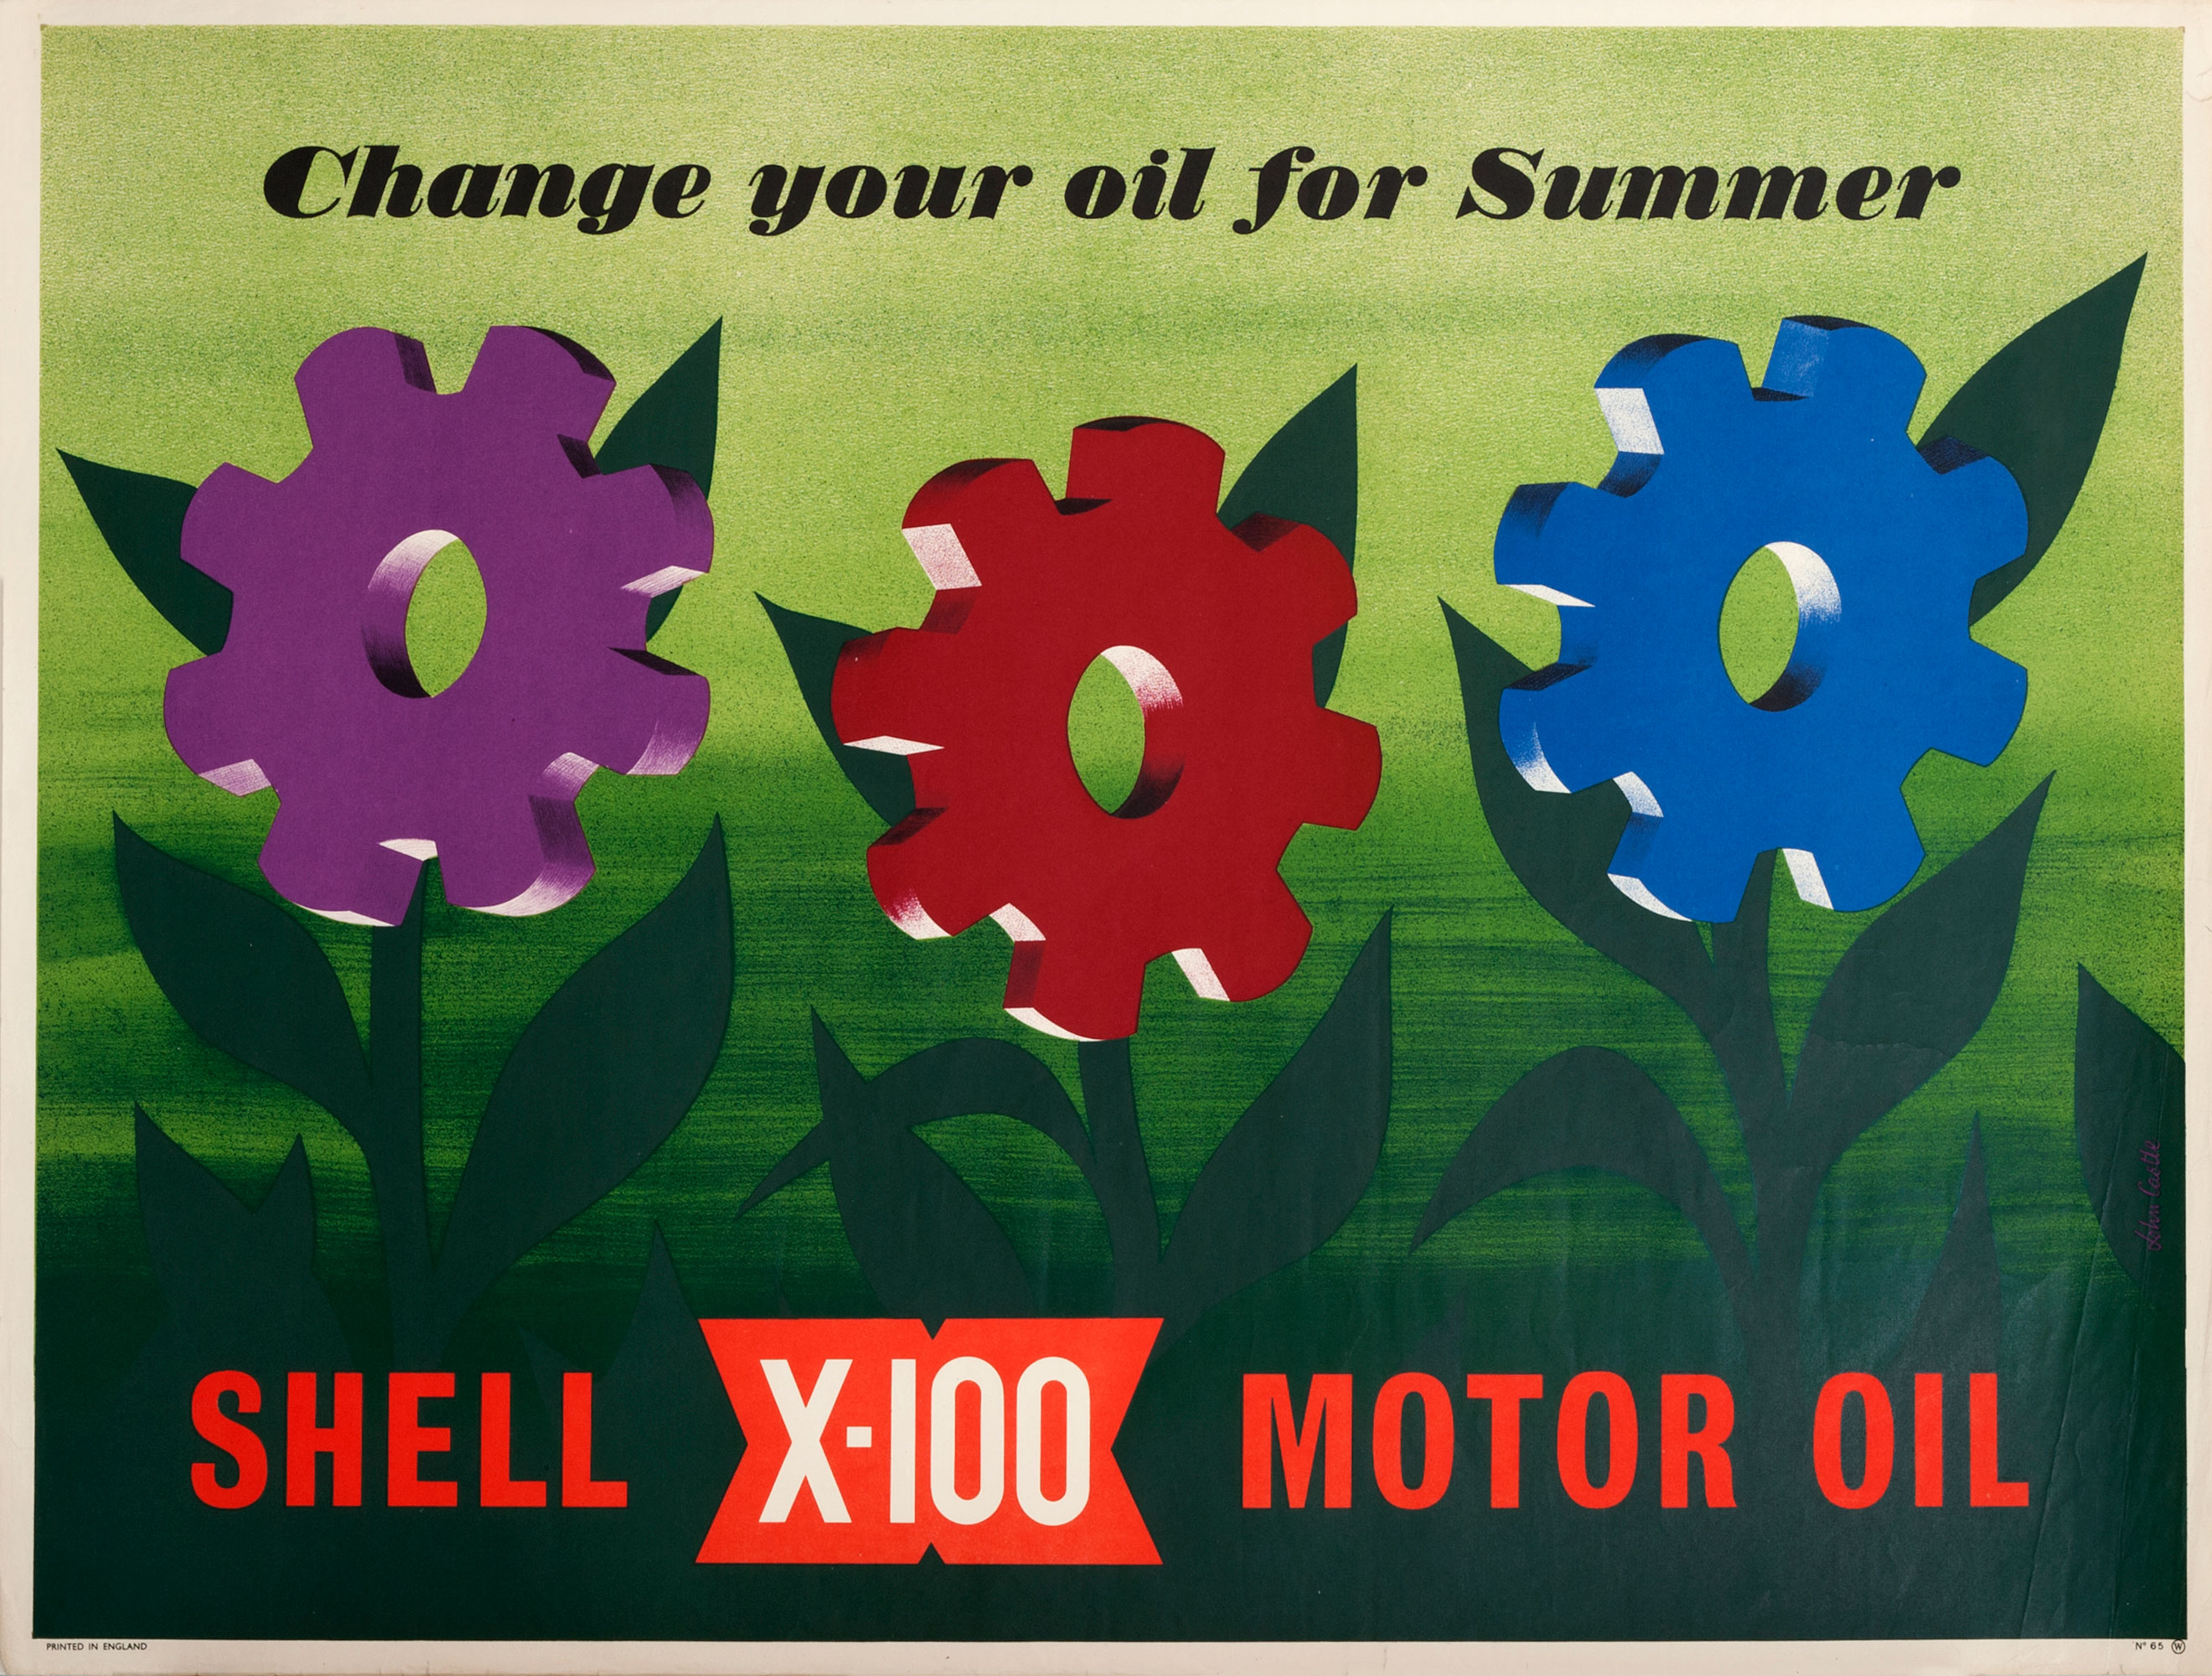 Shell poster number 1565, Change your oil for summer by John Castle. Keen to reintroduce the Shell name back into Britain after the war, Shell devised and launched their new lubricant, X-100 in 1949. Marketed as a new superior lubricant, nothing like X-100 had been seen before. Poster shows stylised flowers with coloured cogs as flower heads.